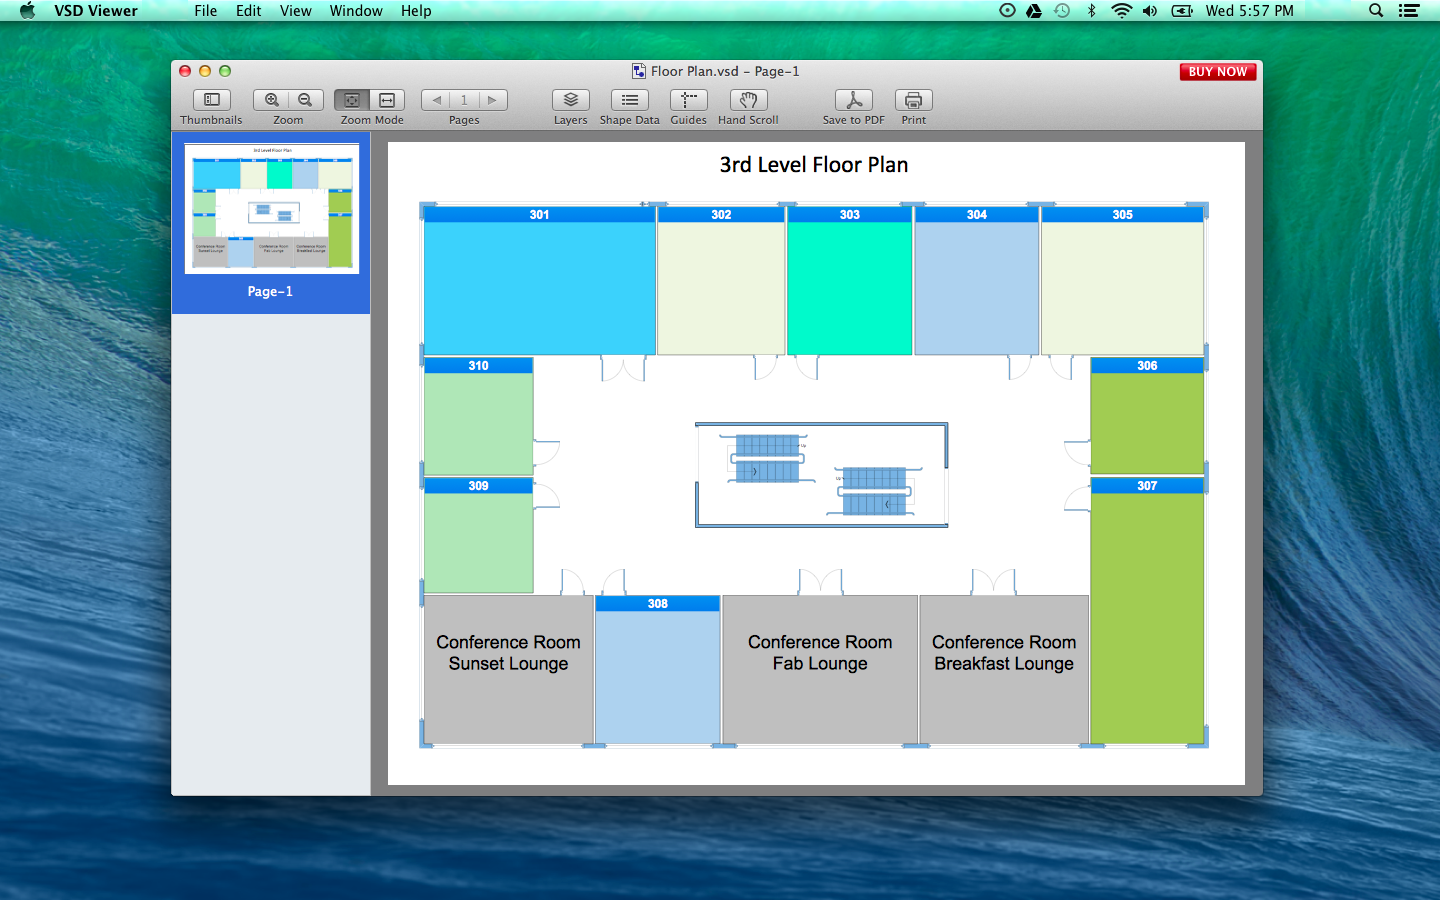 visio viewer for mac - Open Visio File On Mac